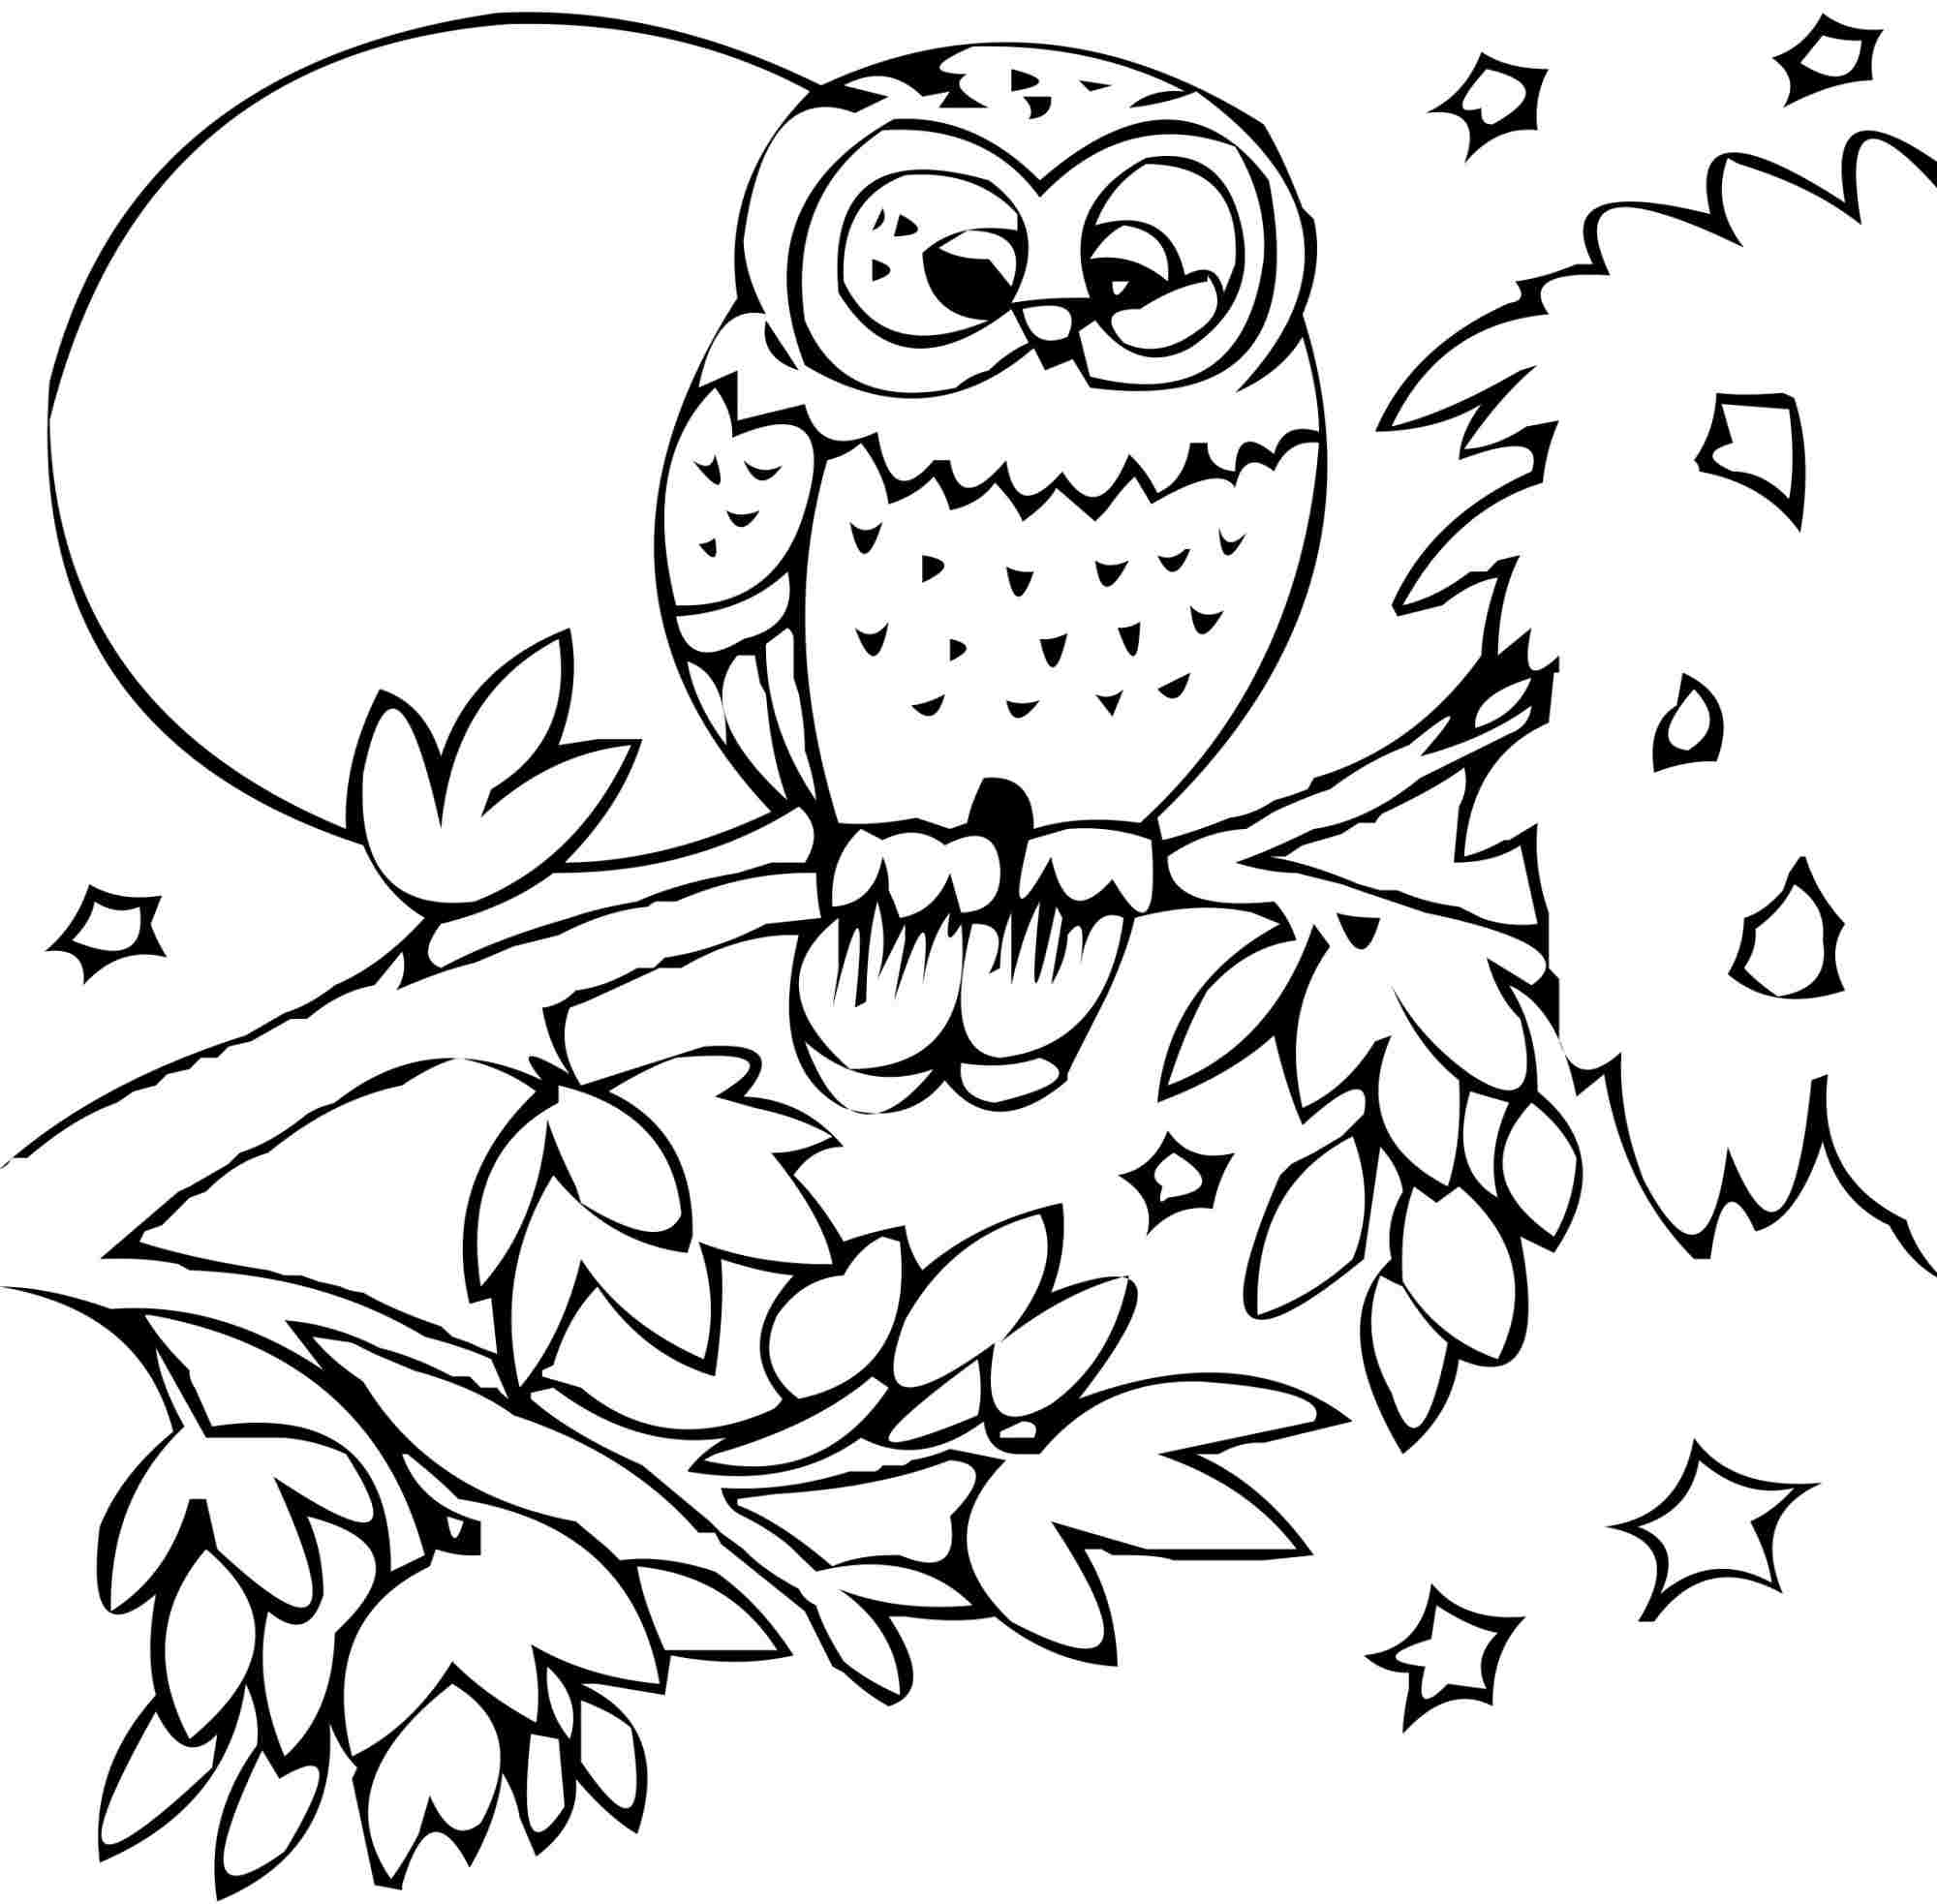 Animal Coloring Pages For Kids At Getdrawings Com Free For